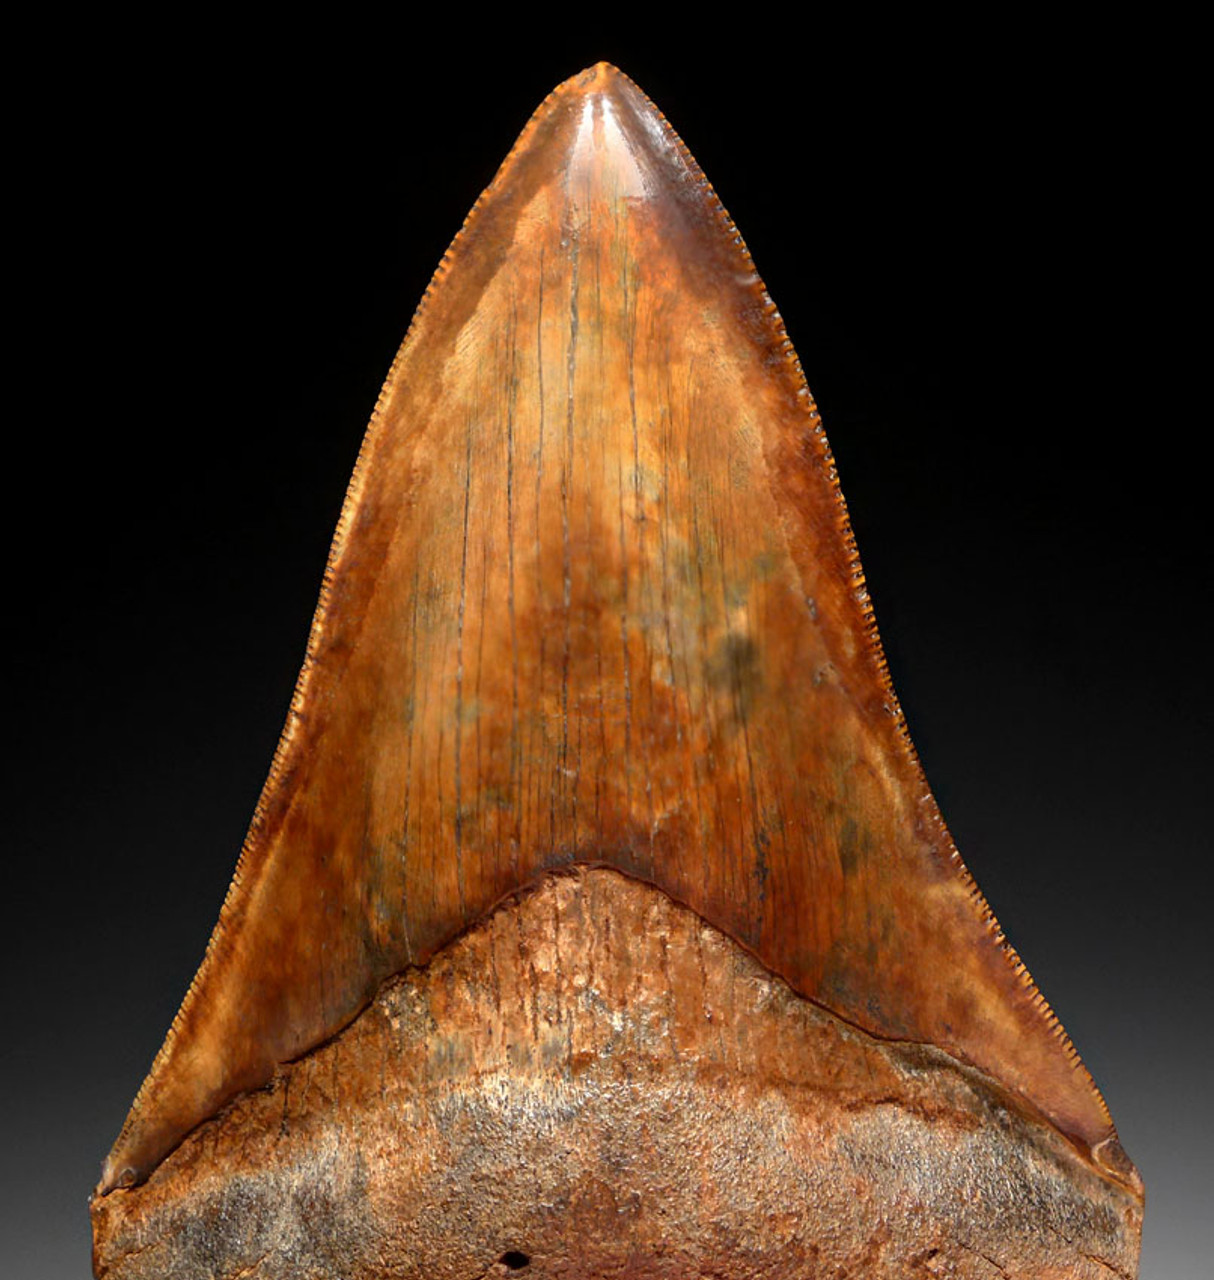 SH6-394 - SUPREME COLLECTOR GRADE LOWER JAW COPPER RED 4.15 INCH MEGALODON FOSSIL SHARK TOOTH